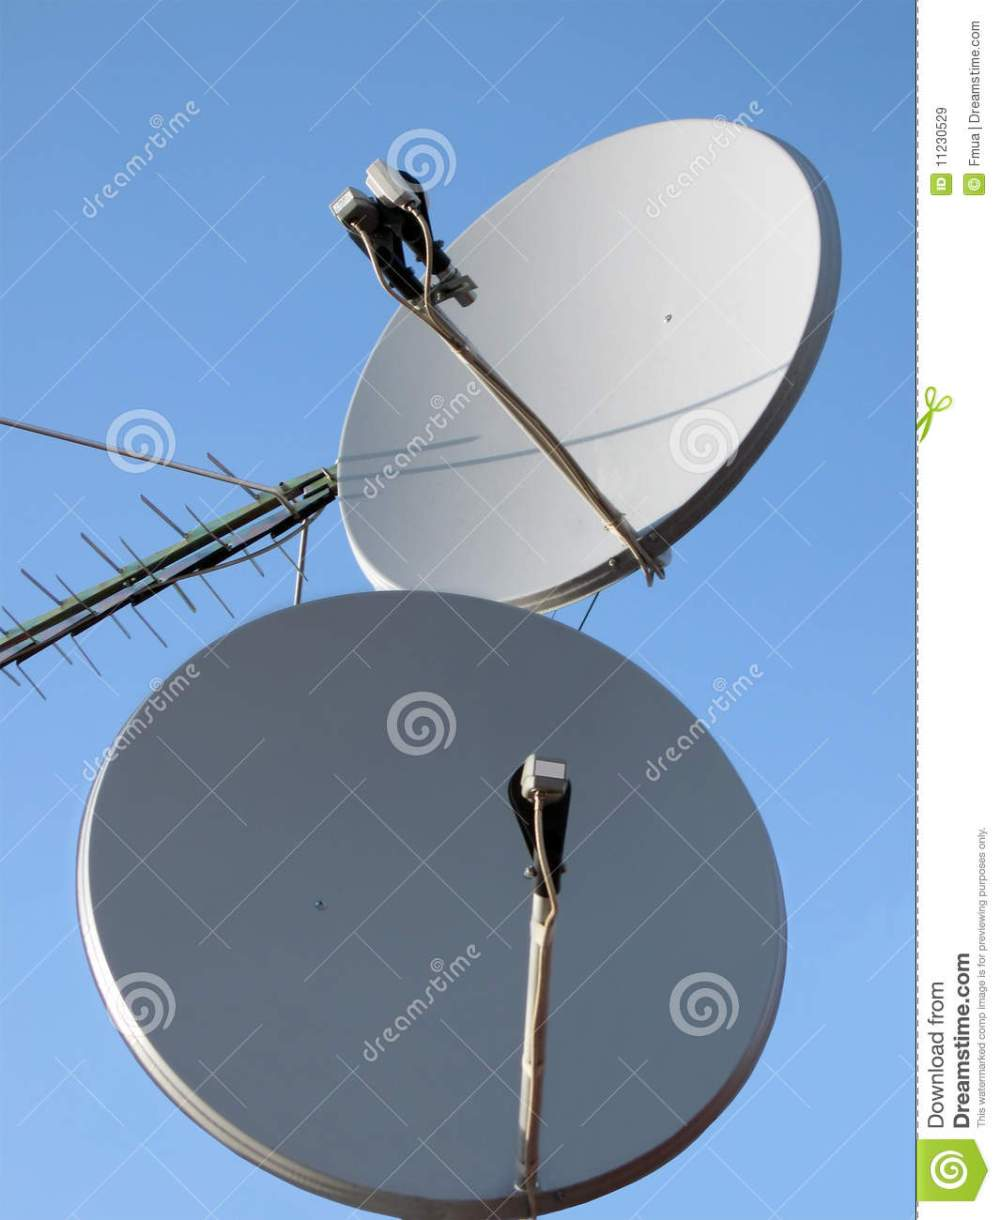 medium resolution of satellite dish telecommunication technology radio signal antenna radio antenne for wireless mobile phone connections mobile gsm umts on blue sky